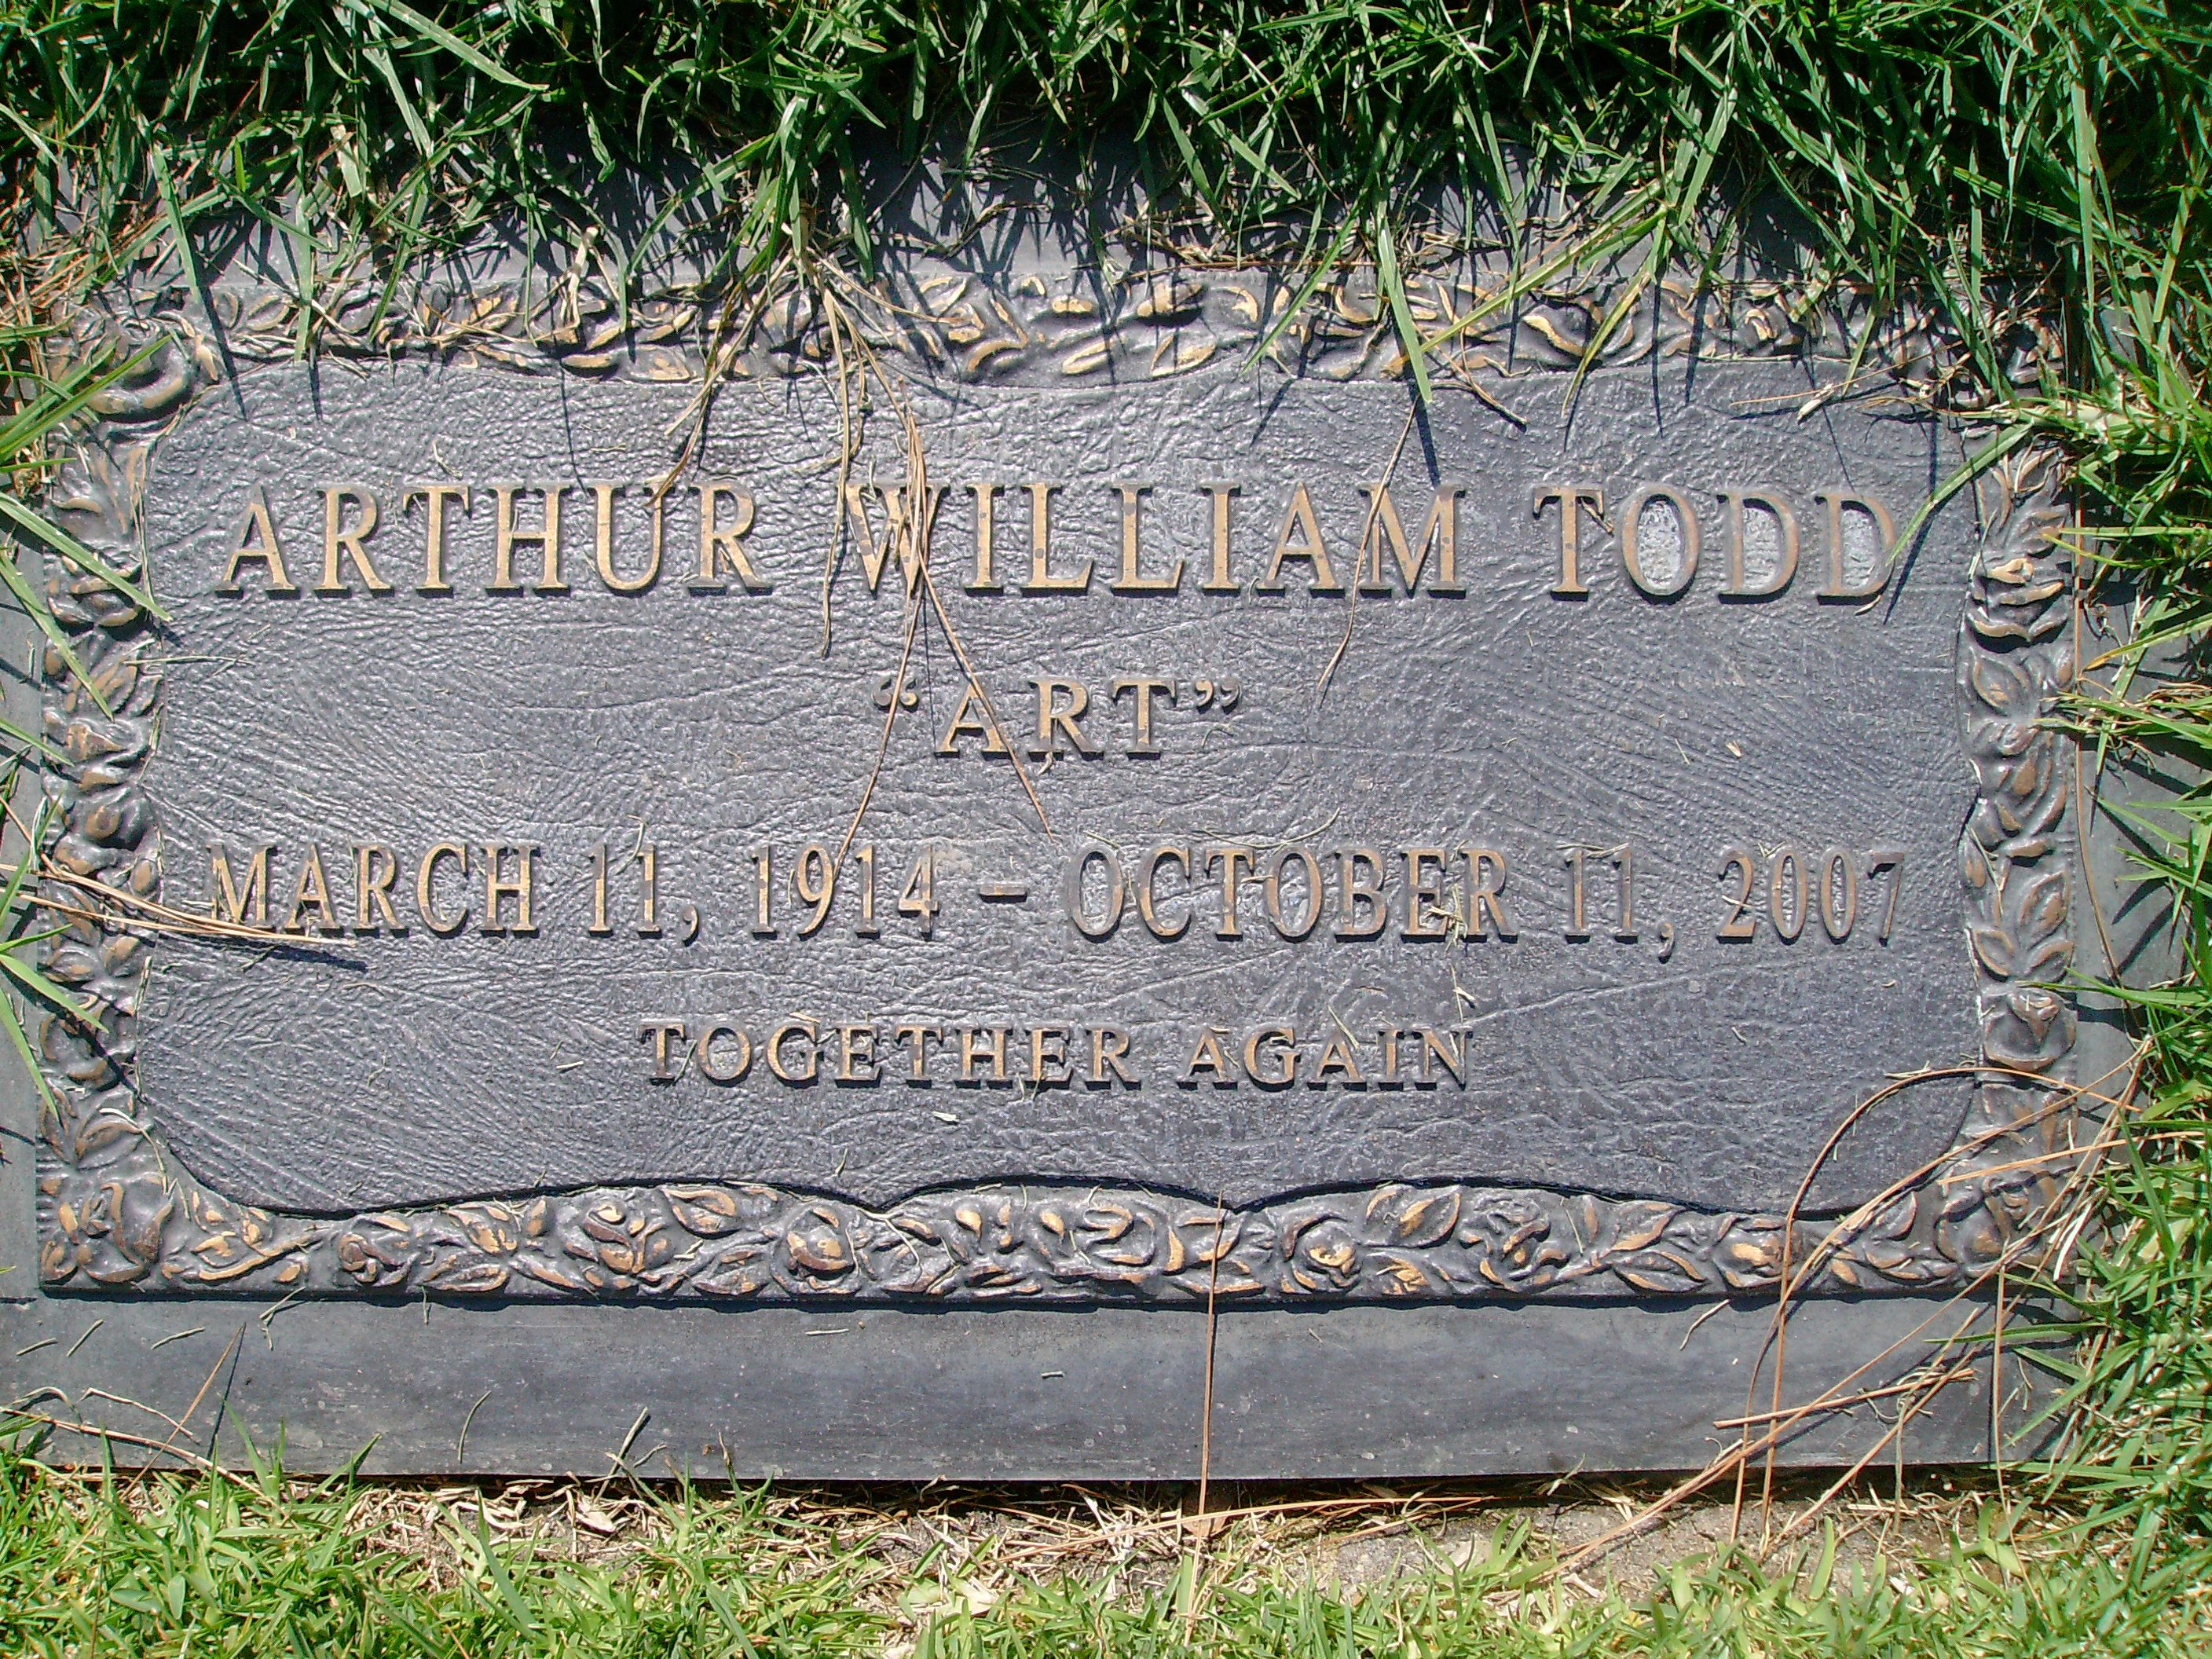 """Arthur W. Todd - Musician. He was a guitar player and with his wife Doris on piano, they were known as the singing duo, Art and Dotty Todd. They hold the distinction of being one-hit wonders in both the U.S. and UK, but with different songs. In 1953, they scored a number one hit in England with, """"Broken Wings"""". In America, their song """"Chanson d'Amour"""" peaked at number six on Billboard's Top 40 list, remaining on the charts for 11 weeks in 1958."""